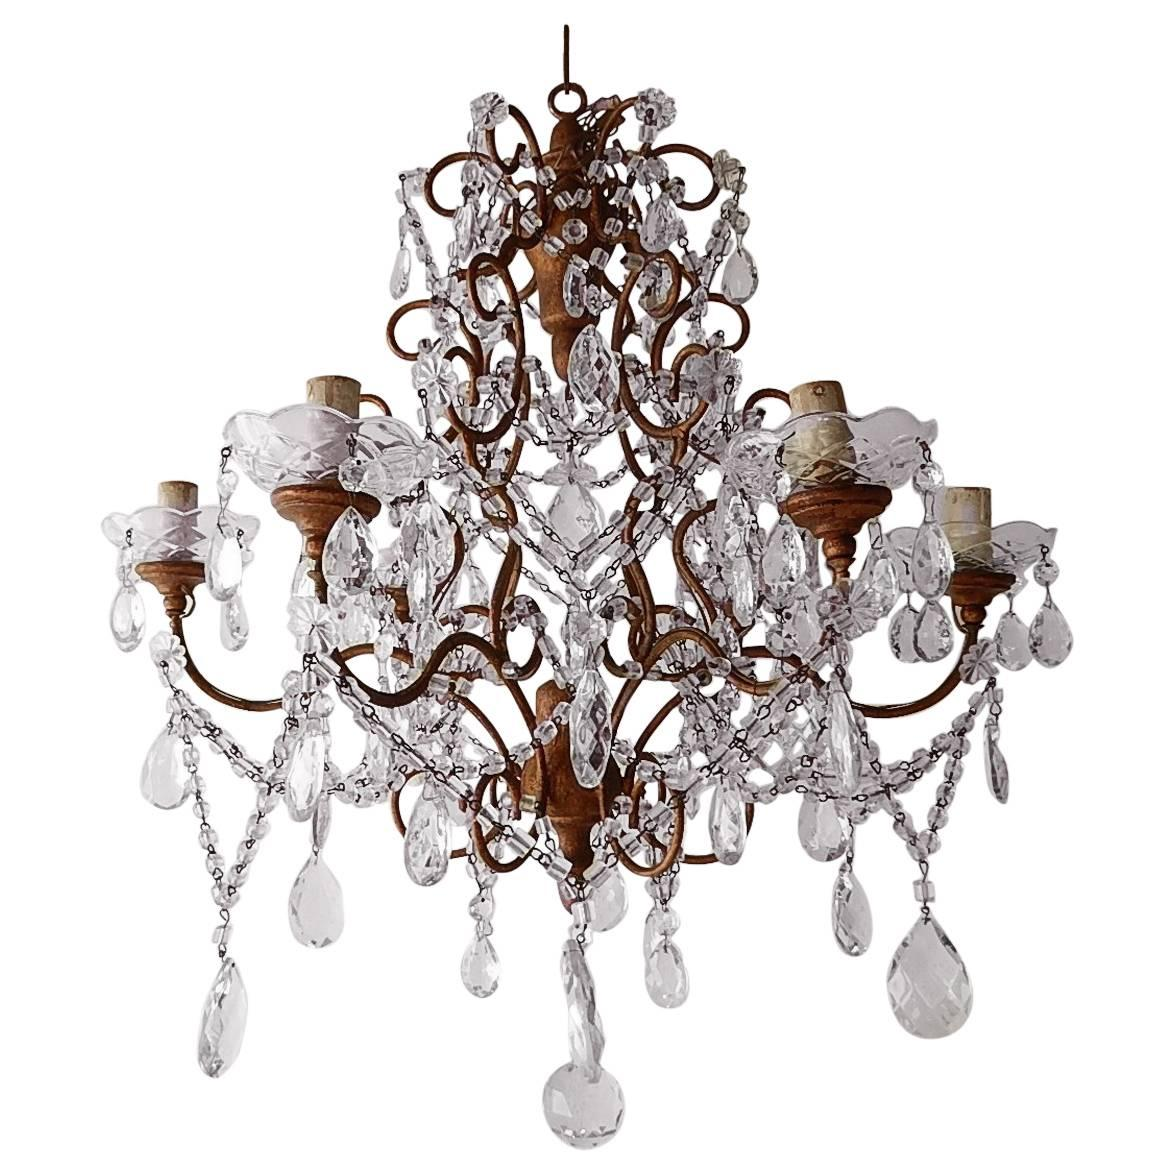 French Giltwood Crystal Prisms Chandelier, circa 1920